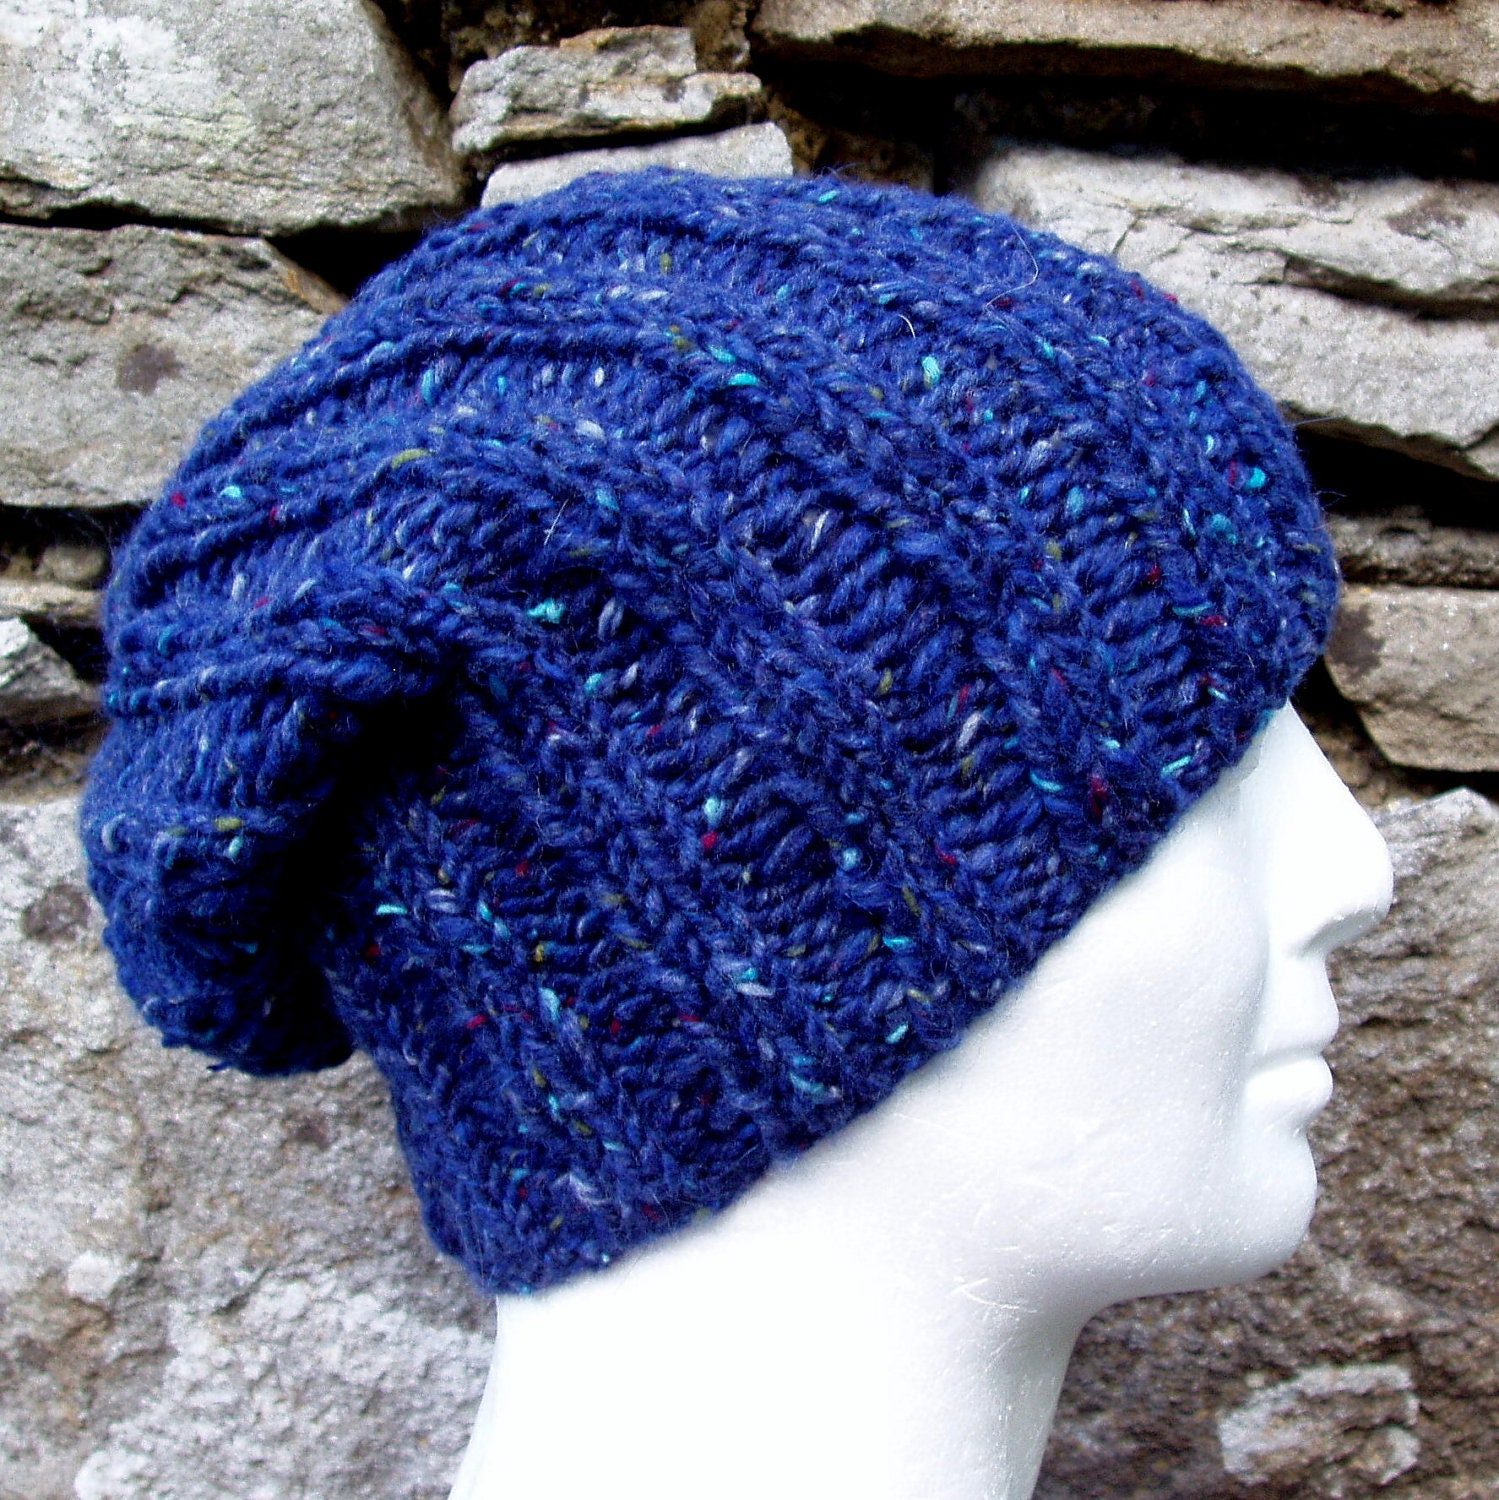 Knitting Pattern Hat In The Round : KNITTING PATTERN for SEATTLE Chunky Knit Ribbed Hat for ...